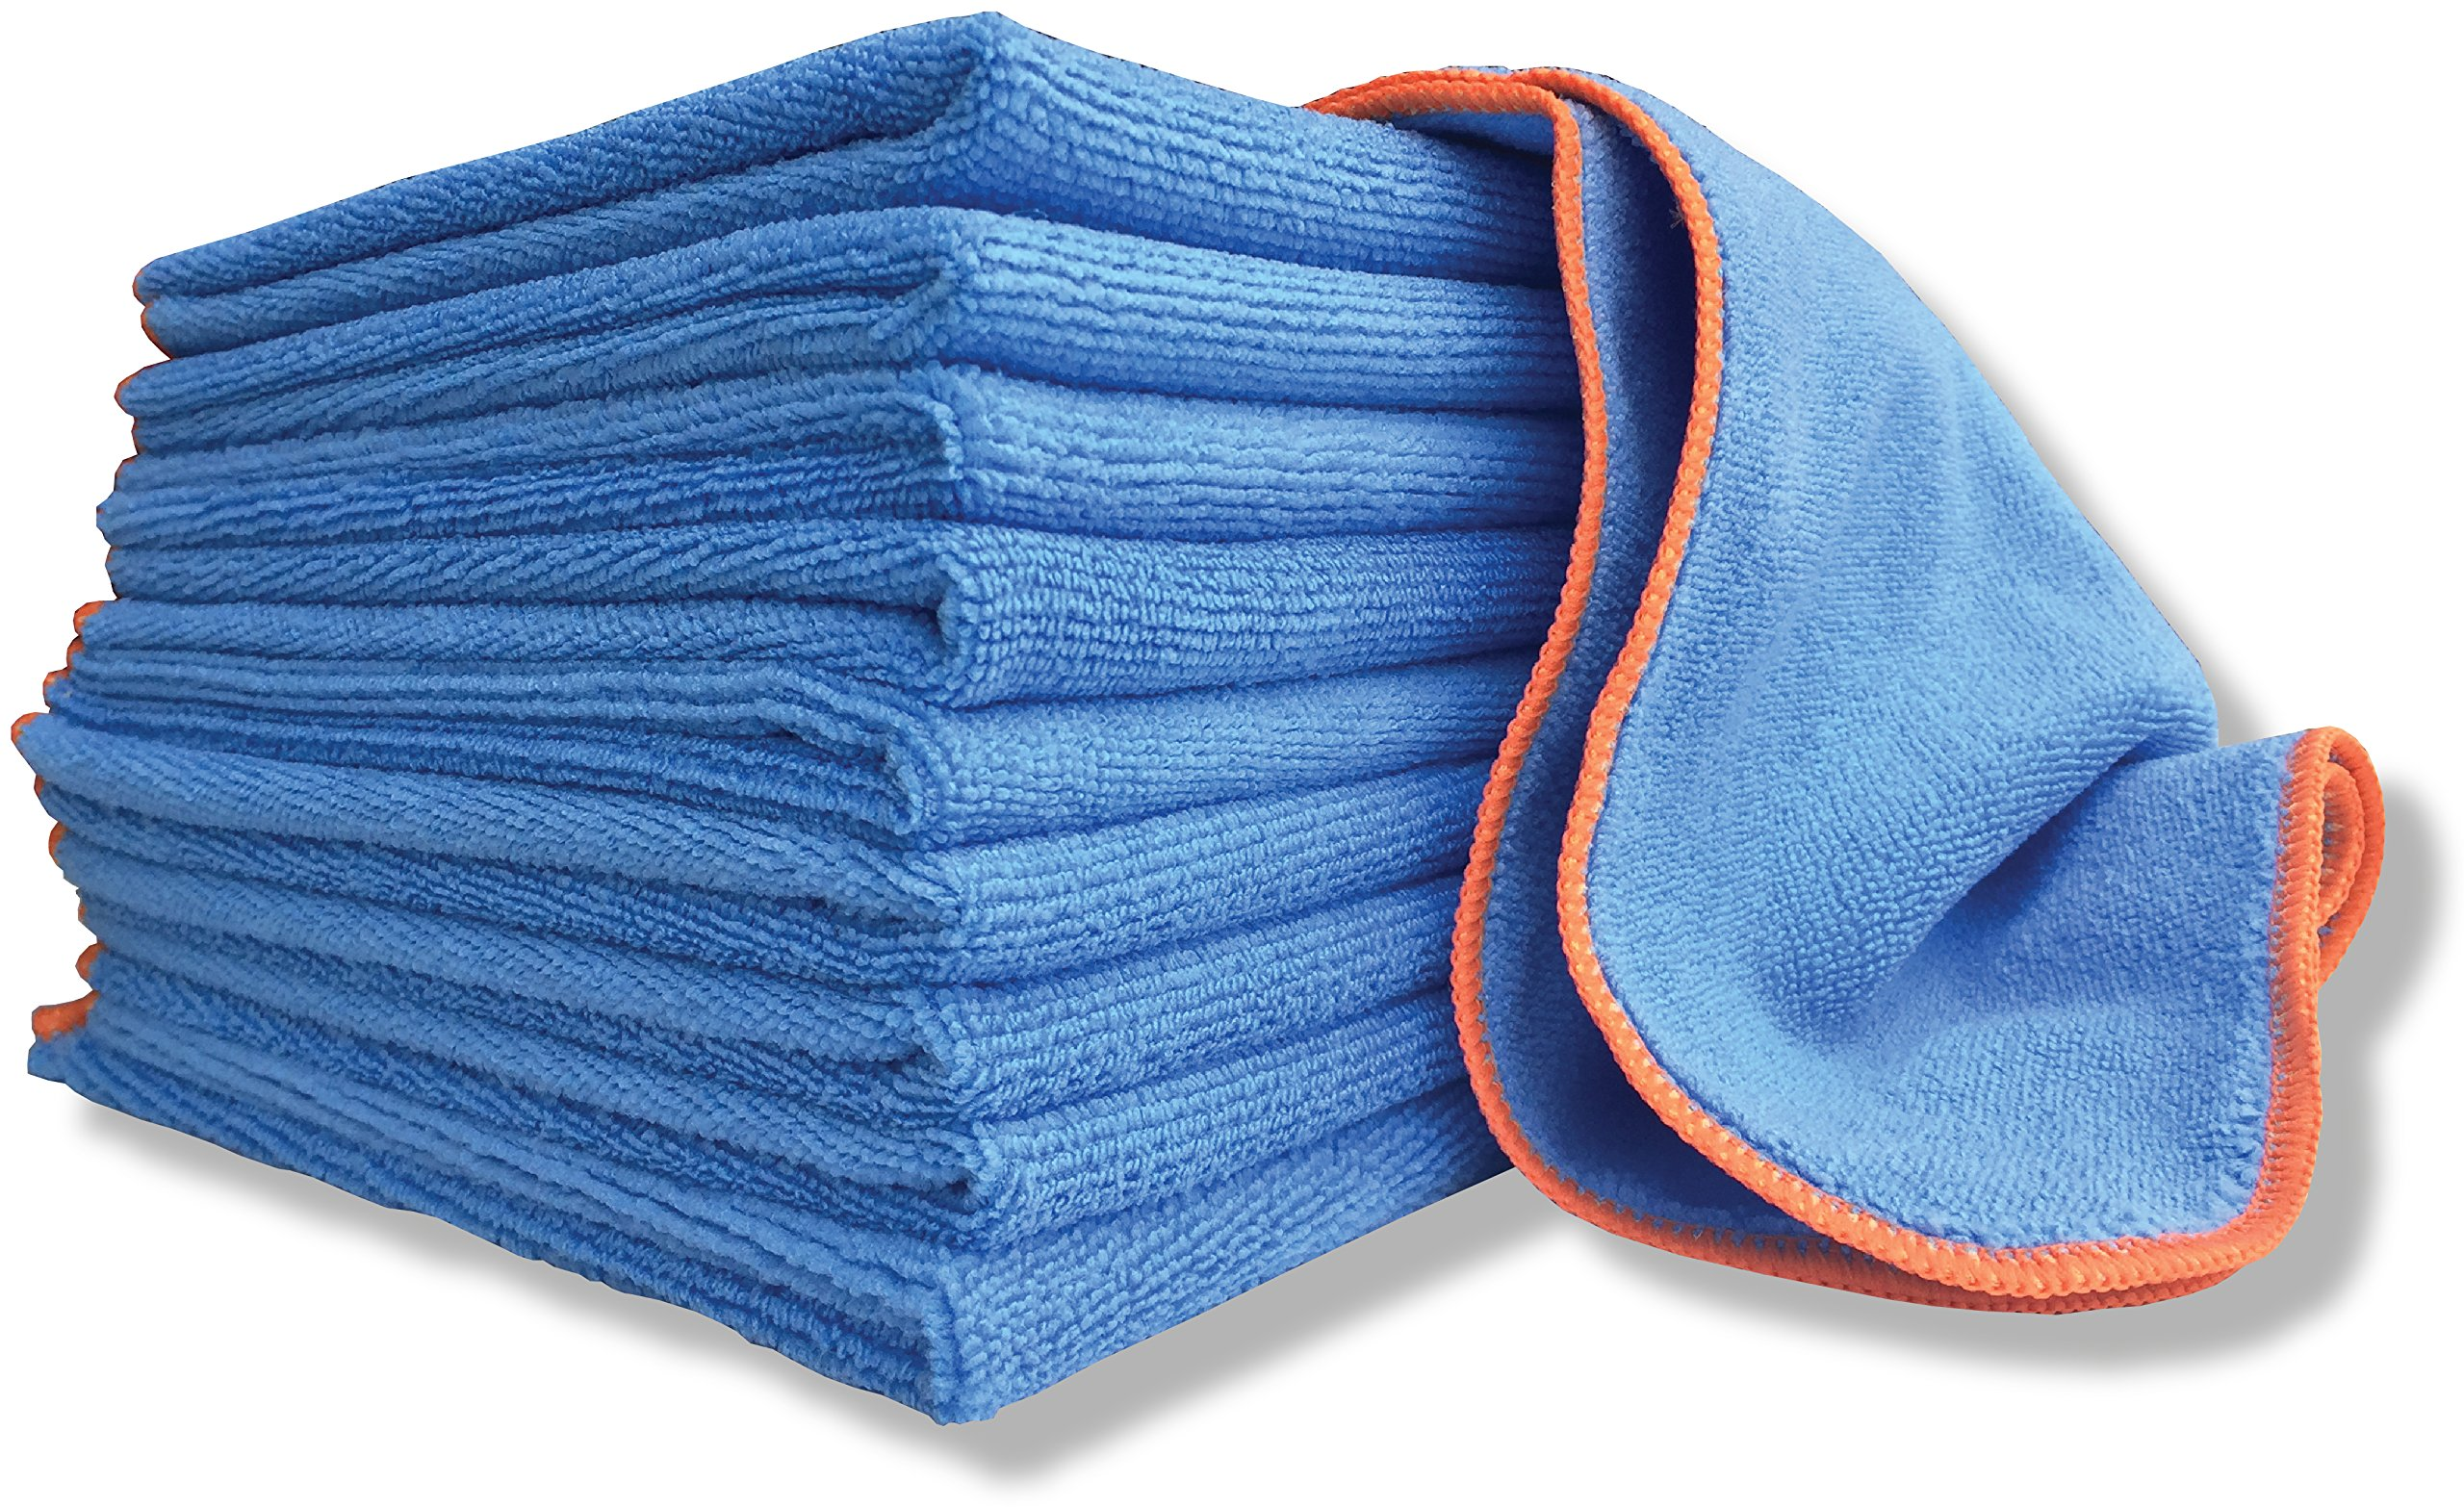 Antibacterial Microfiber Cloth Silver Infused - 10 Pack Large 16''x16'' Towels With EPA Registered SilverClear | Cleans While Killing Bacteria, Odors, Viruses | Safe For Kids & Pets